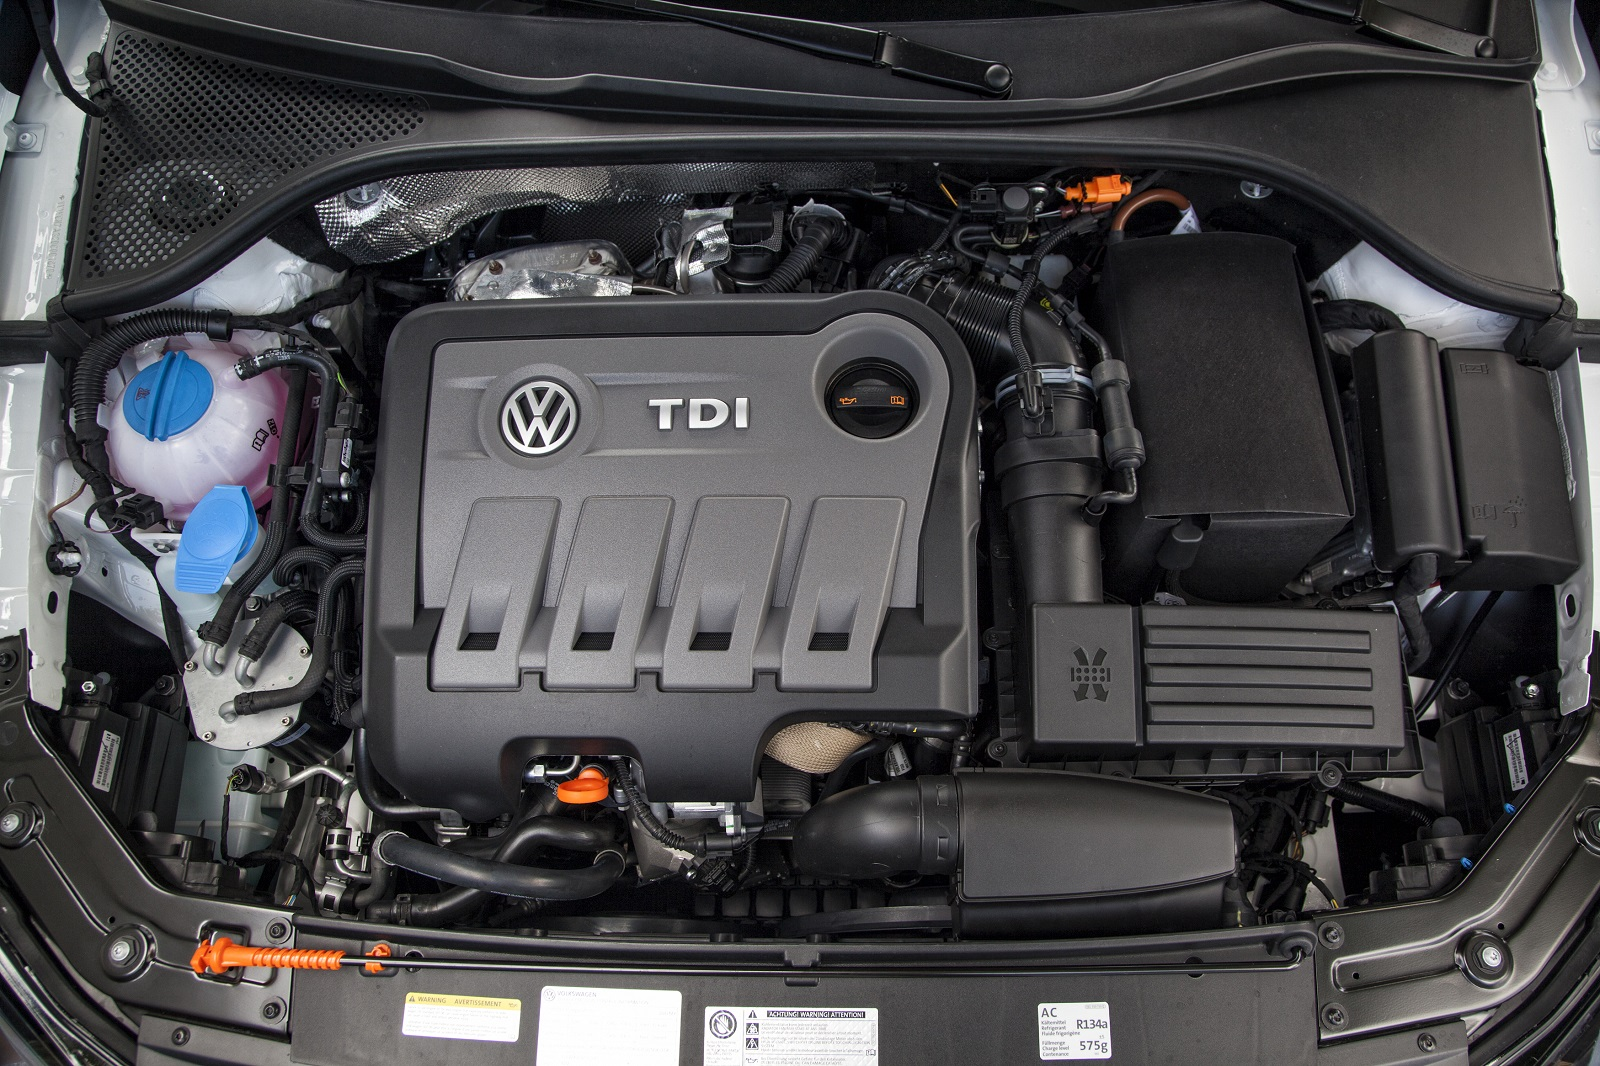 Vw Type 4 Engine Diagram Best Wiring Library 2014 Jetta Fuse Box New Investigations Of Bosch Eu Loans In Diesel 1